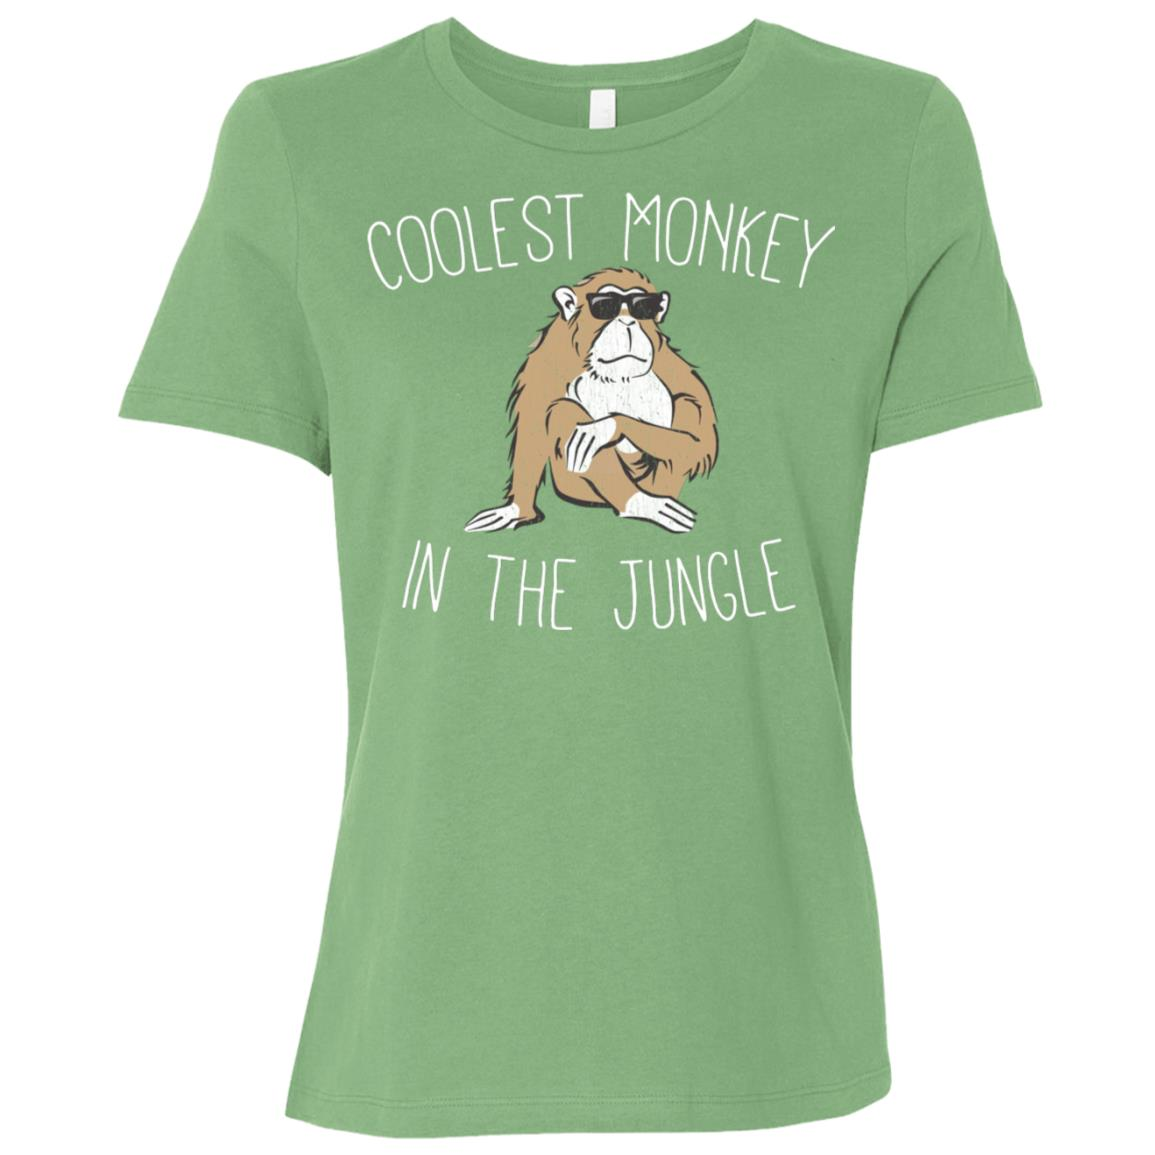 The Coolest Monkey in the Jungle Funny Tee Women Short Sleeve T-Shirt